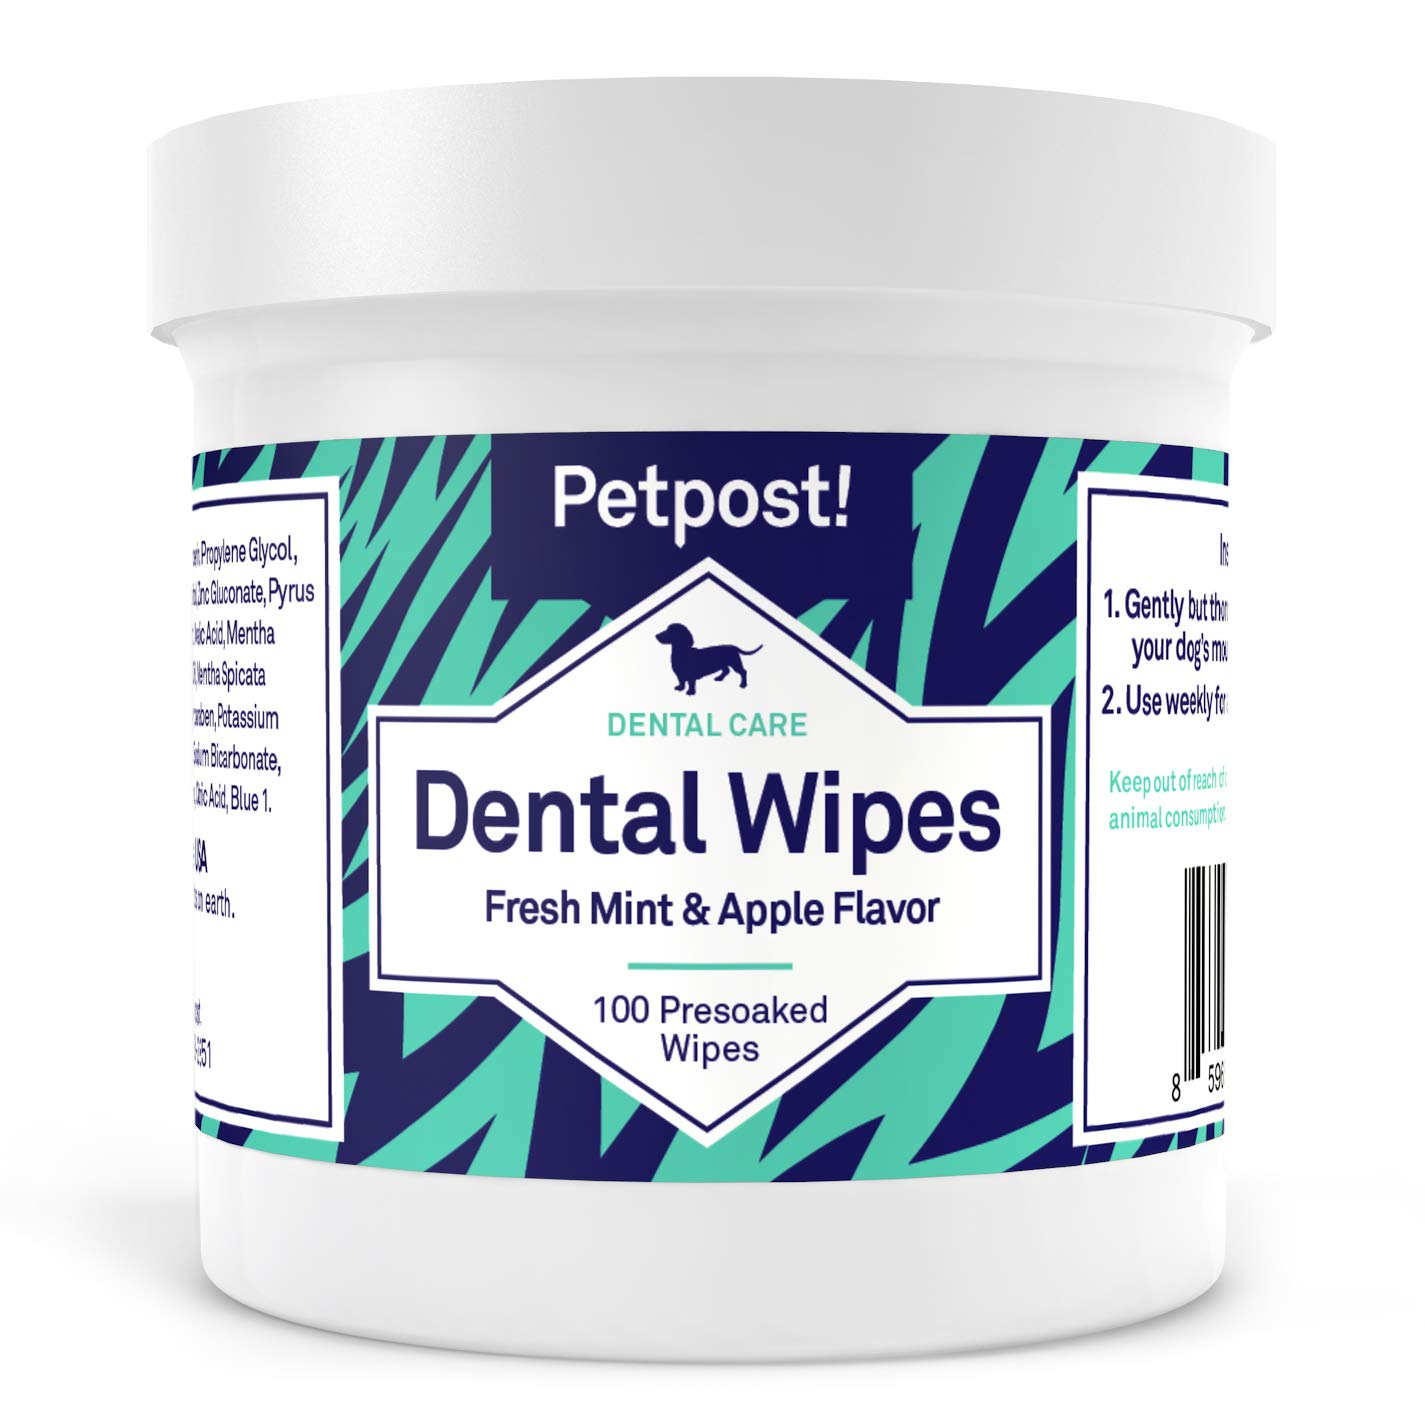 Petpost | Dental Wipes for Dogs - Bad Breath, Plaque and Tooth Decay Gone - 100 Presoaked Pads in Natural Tooth Cleaning Solution by Petpost